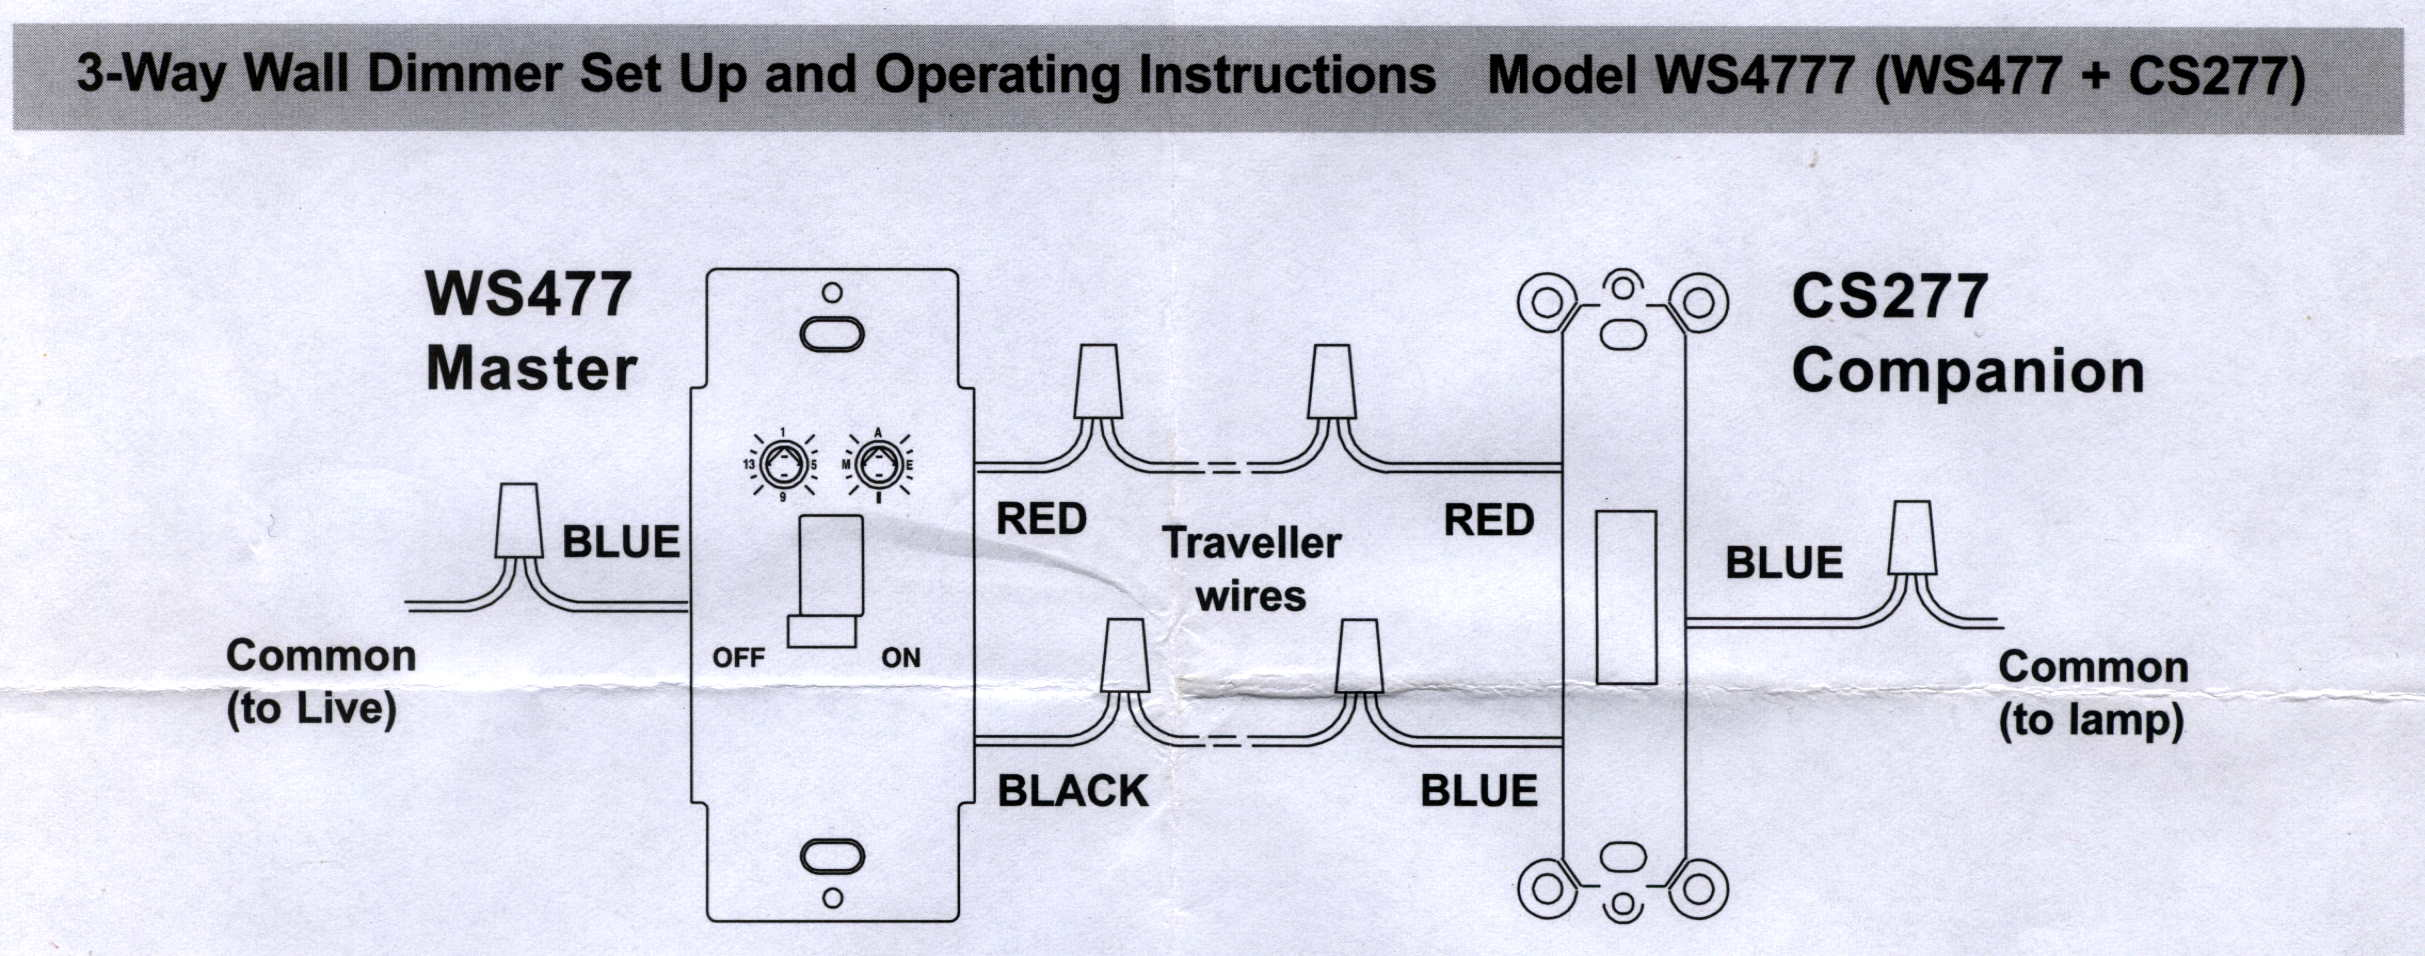 X10 switch wiring diagram free vehicle wiring diagrams using a 3 way x10 wall switch as a 2 way switch the smell of rh softsolder com 2 way switch wiring diagram single pole switch wiring diagram cheapraybanclubmaster Gallery